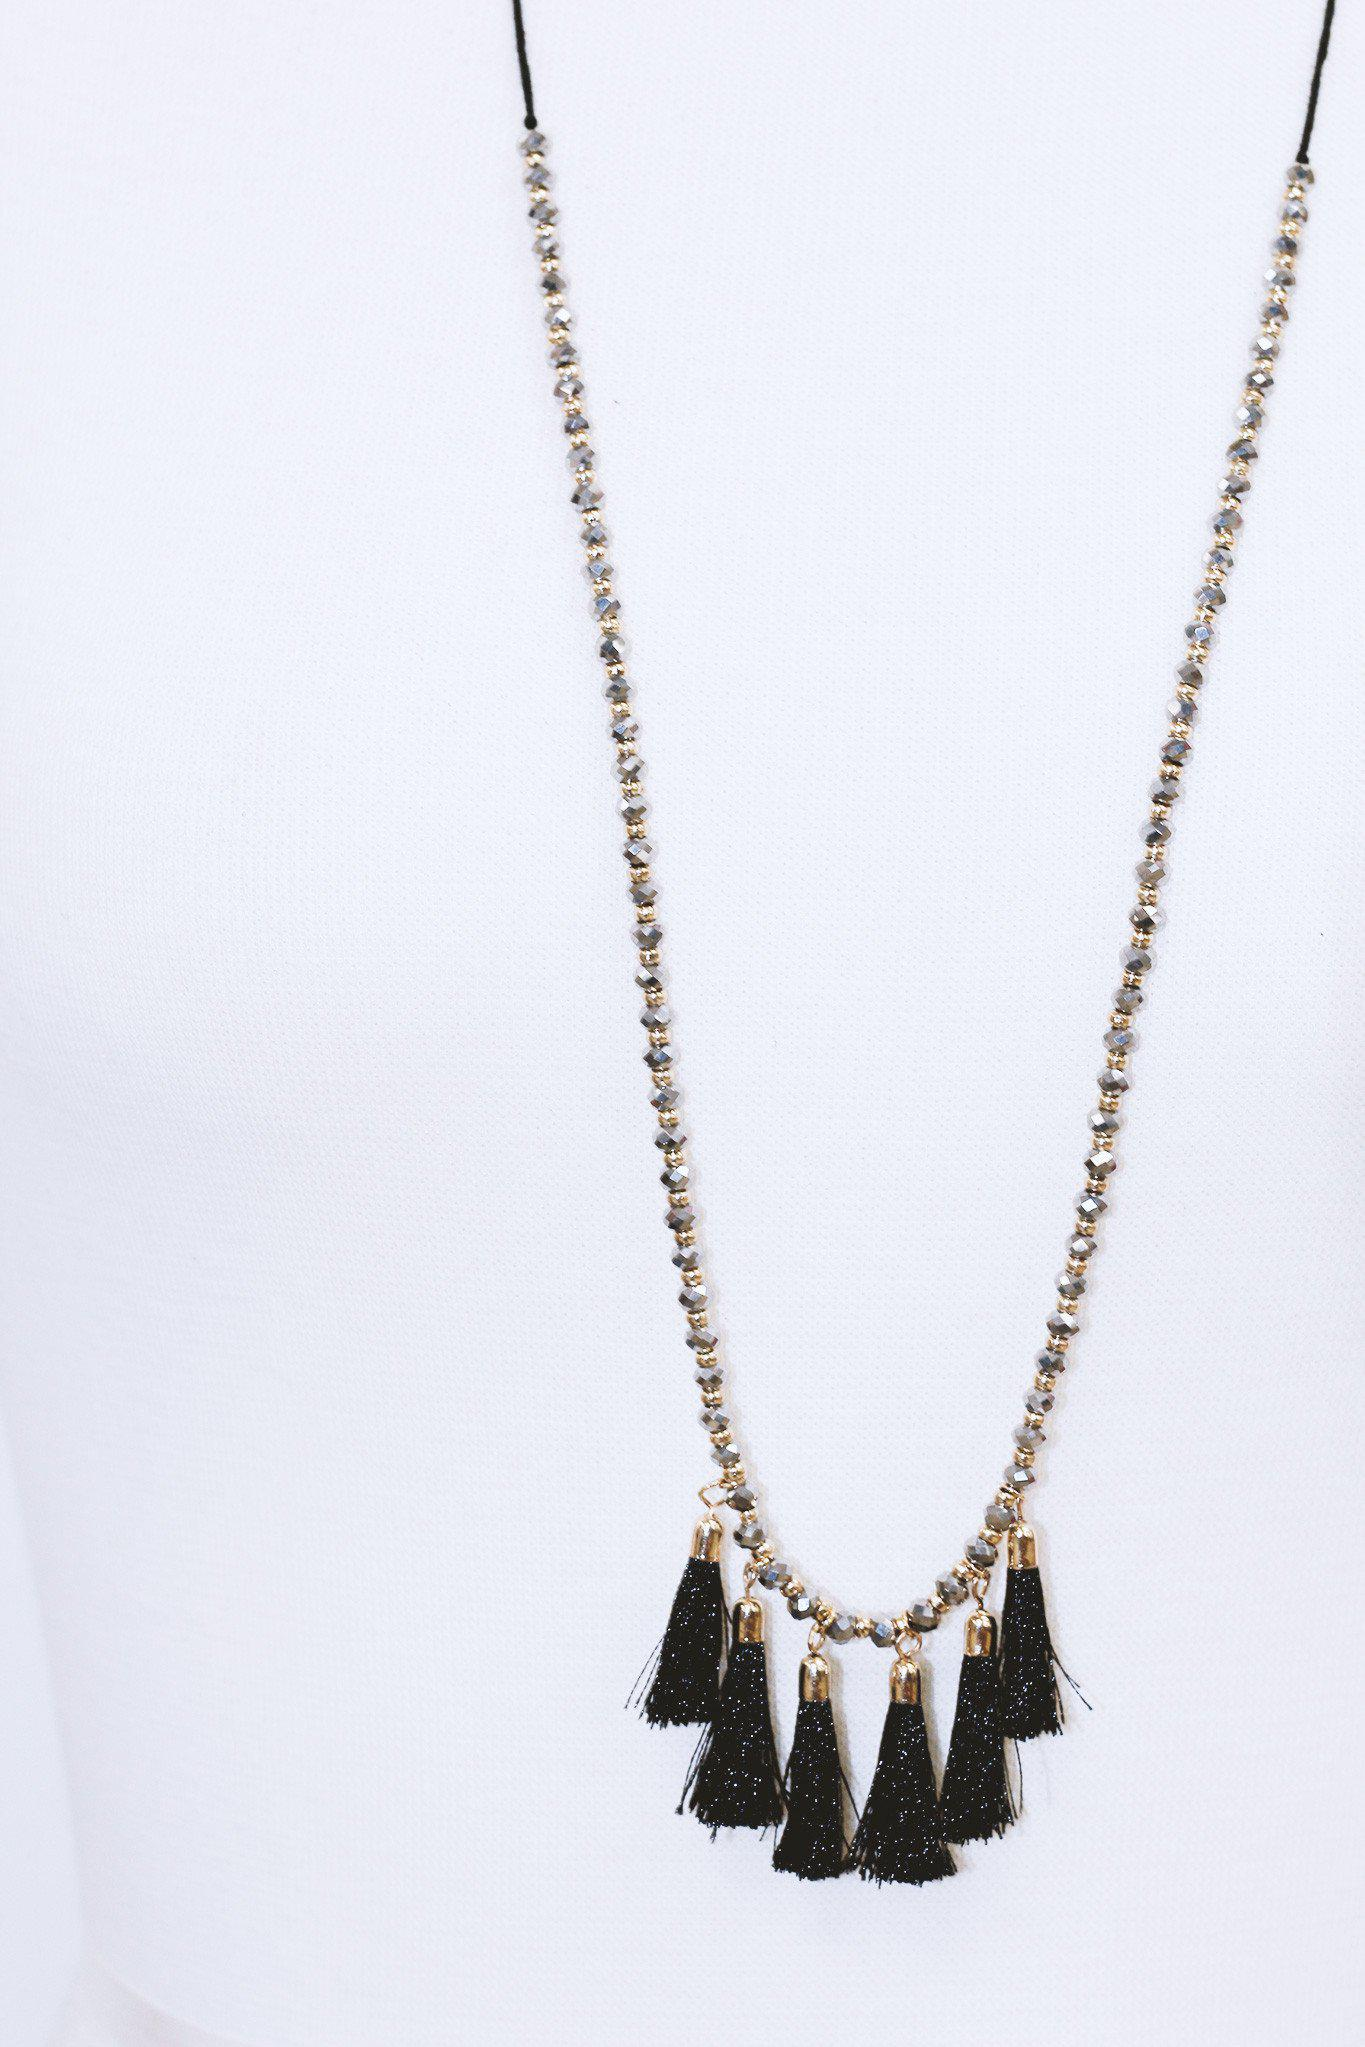 Black Tassel Necklace with Glass Beads